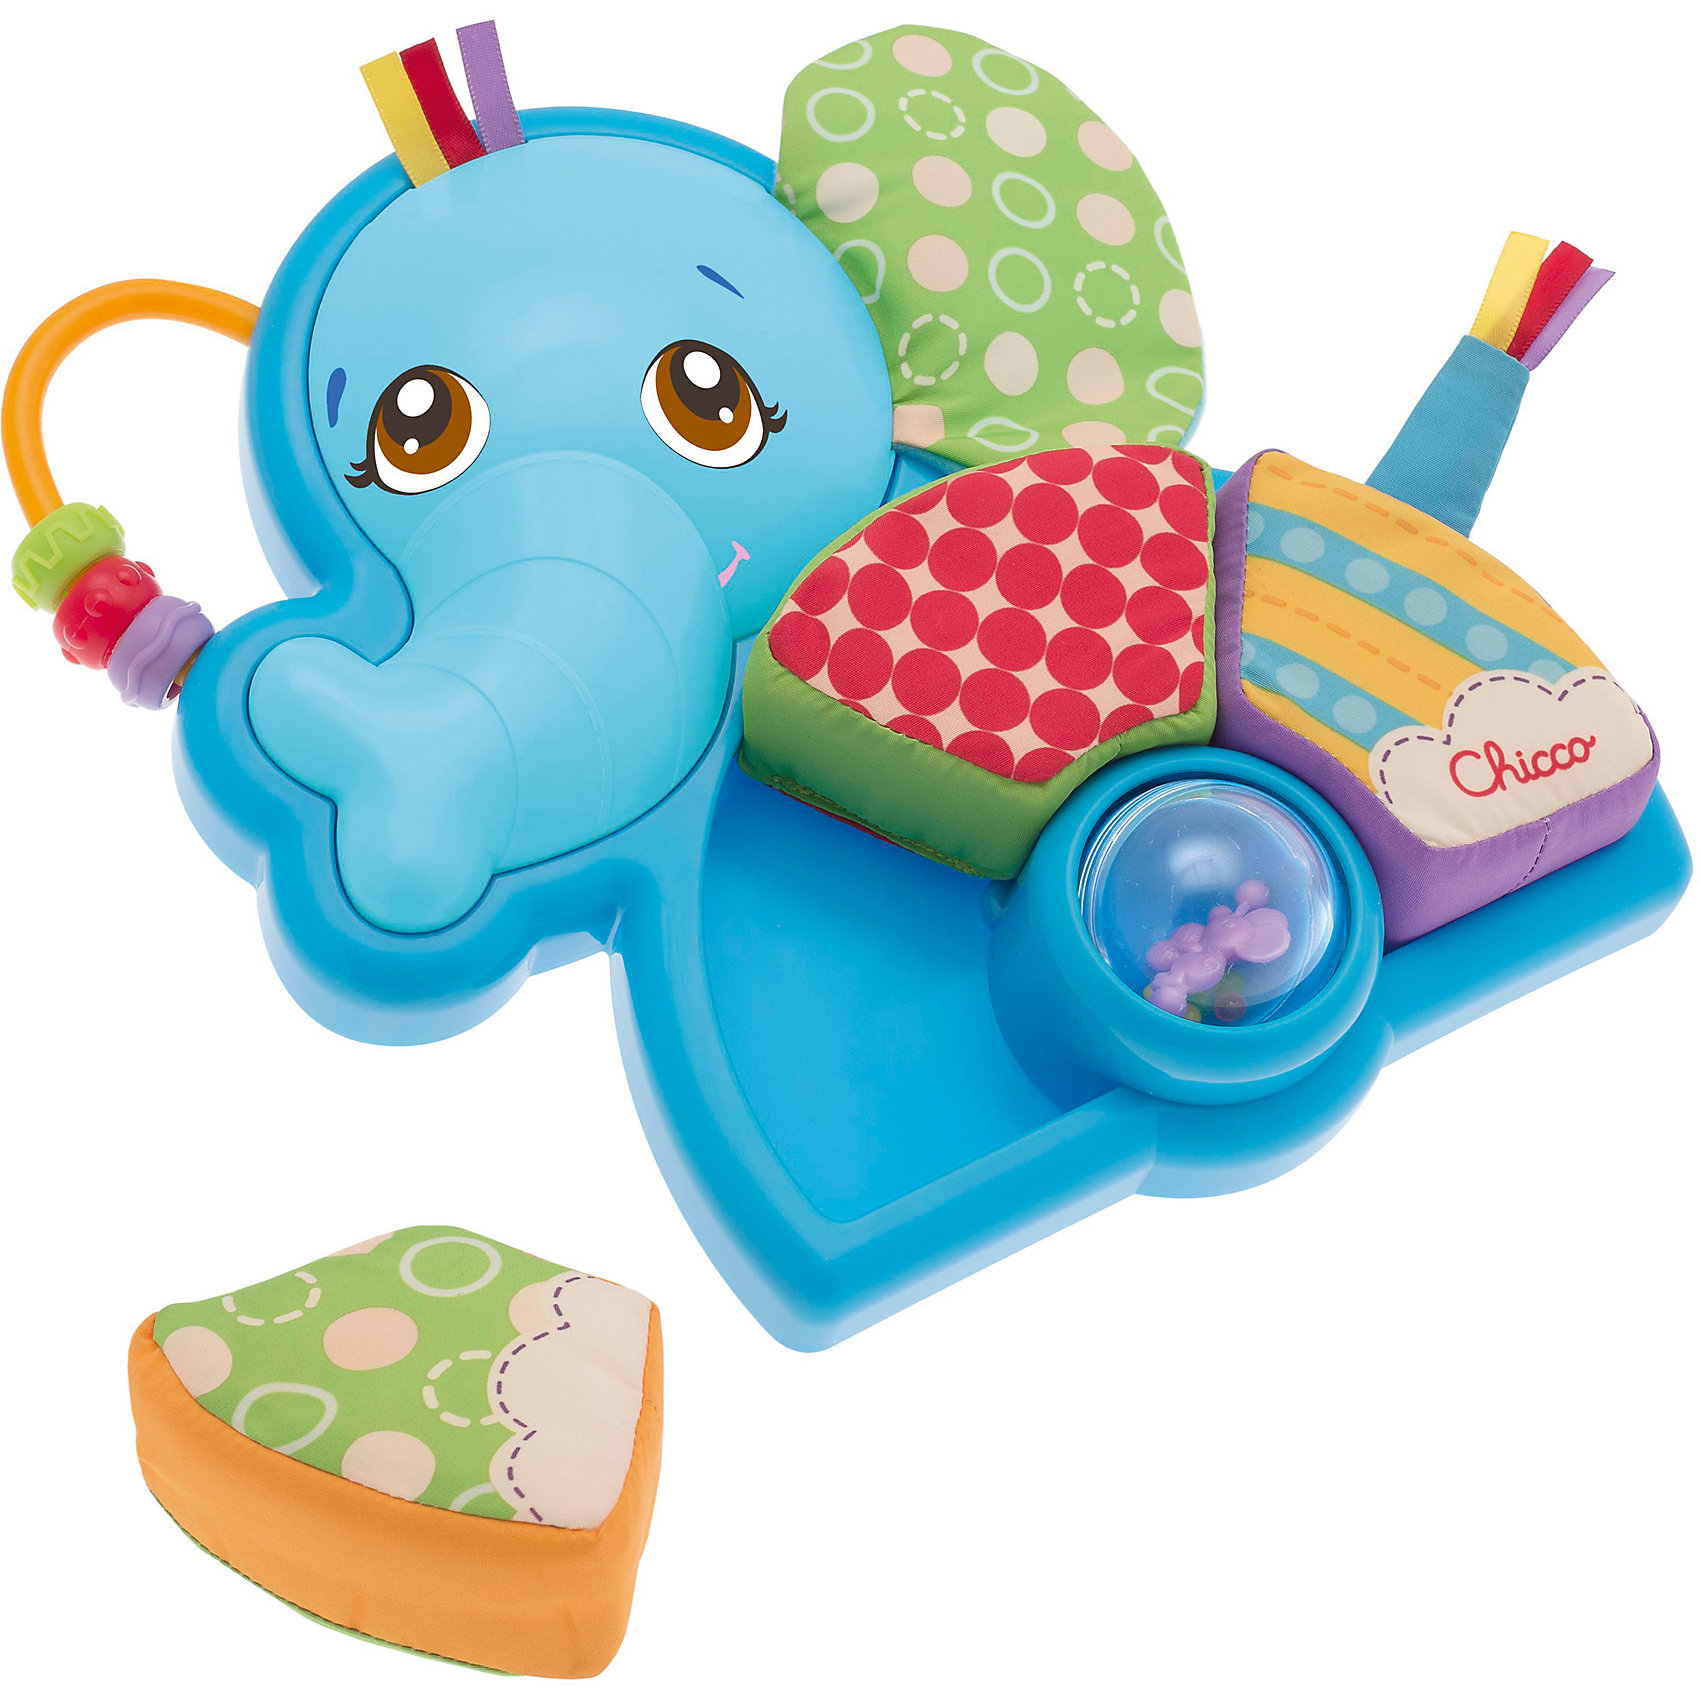 ����������-���� ������ ��������, Chicco (CHICCO)